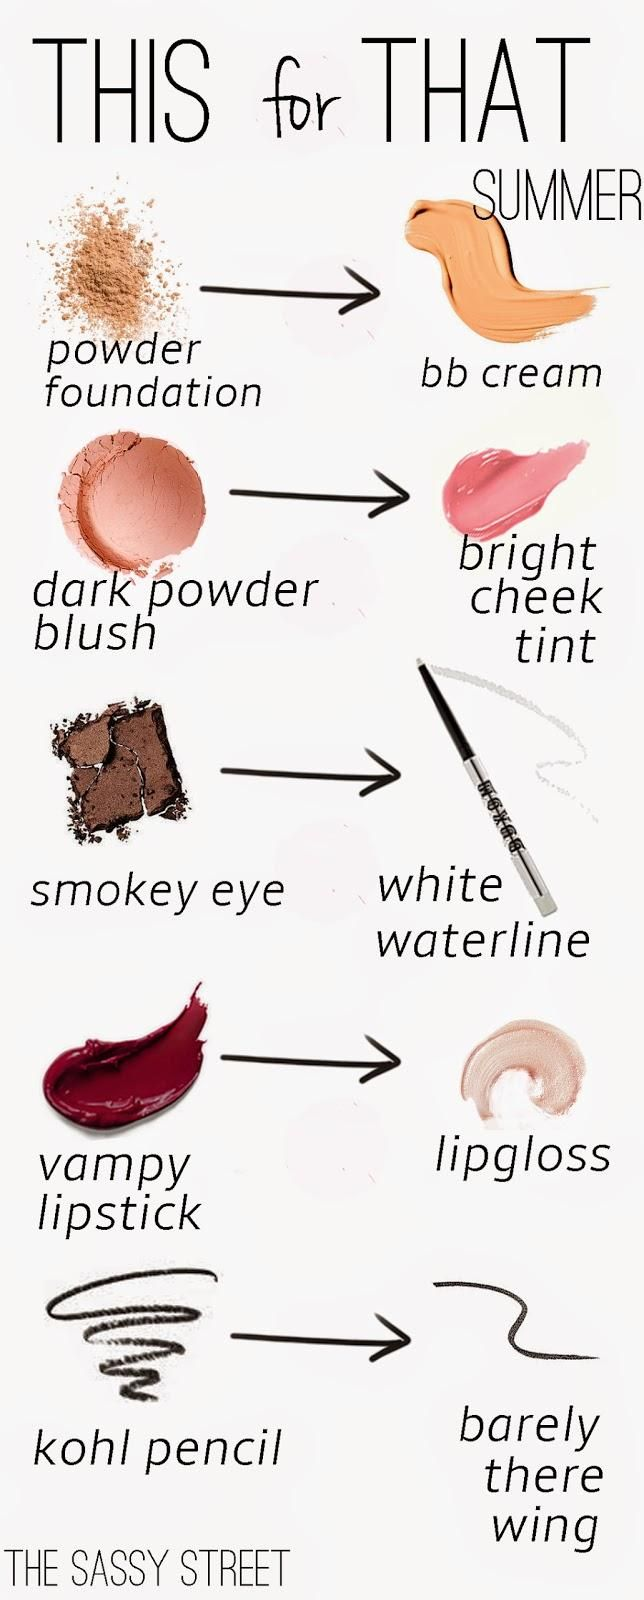 Lighten up your makeup and make it natural to make sure you look your best this summer season!